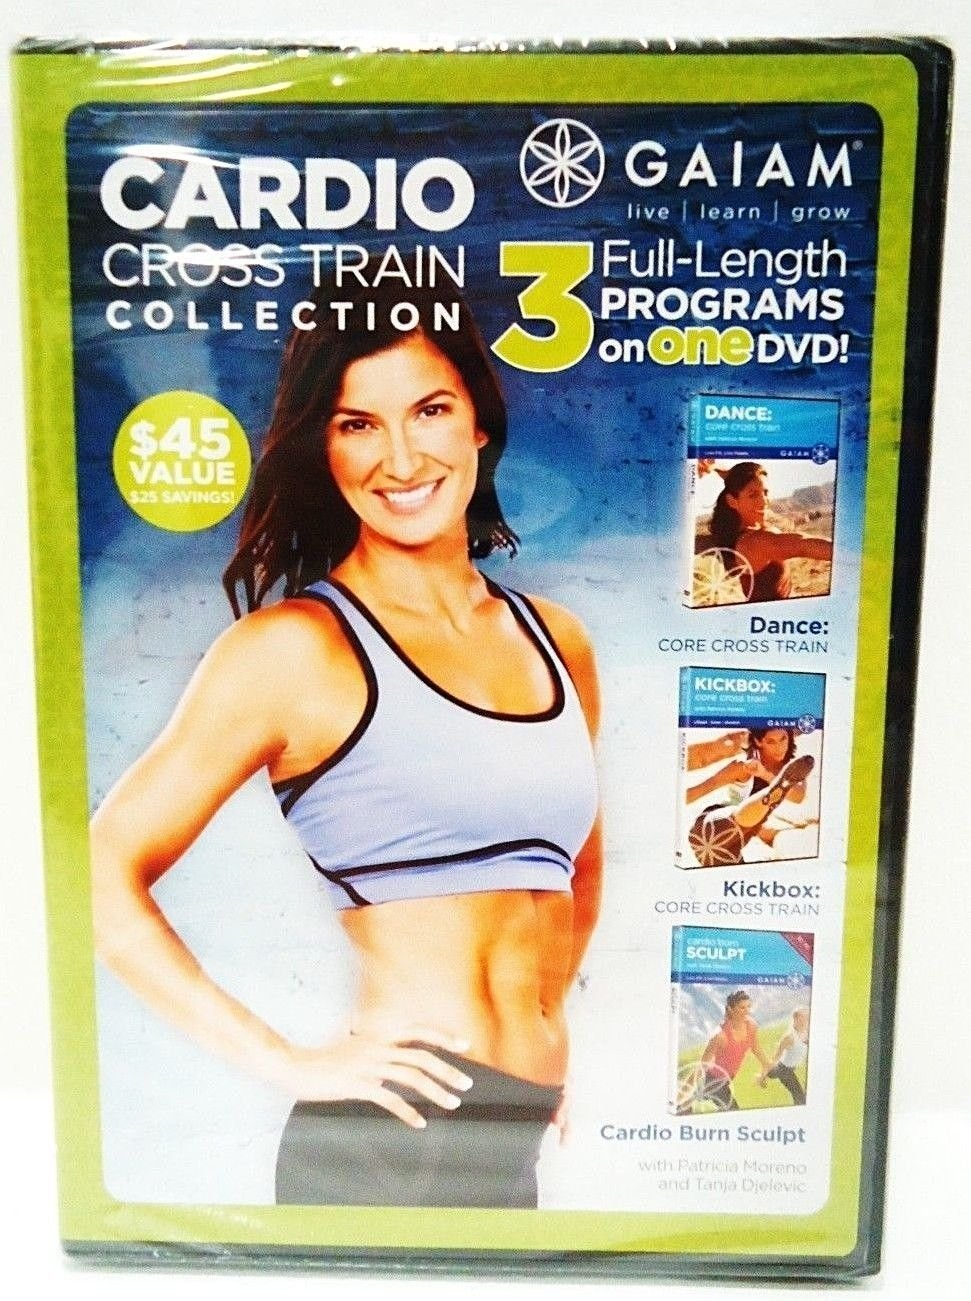 GAIAM - CARDIO - CROSS TRAIN - COLLECTION - WORKOUT - FITNESS - EXERCISE - DVD